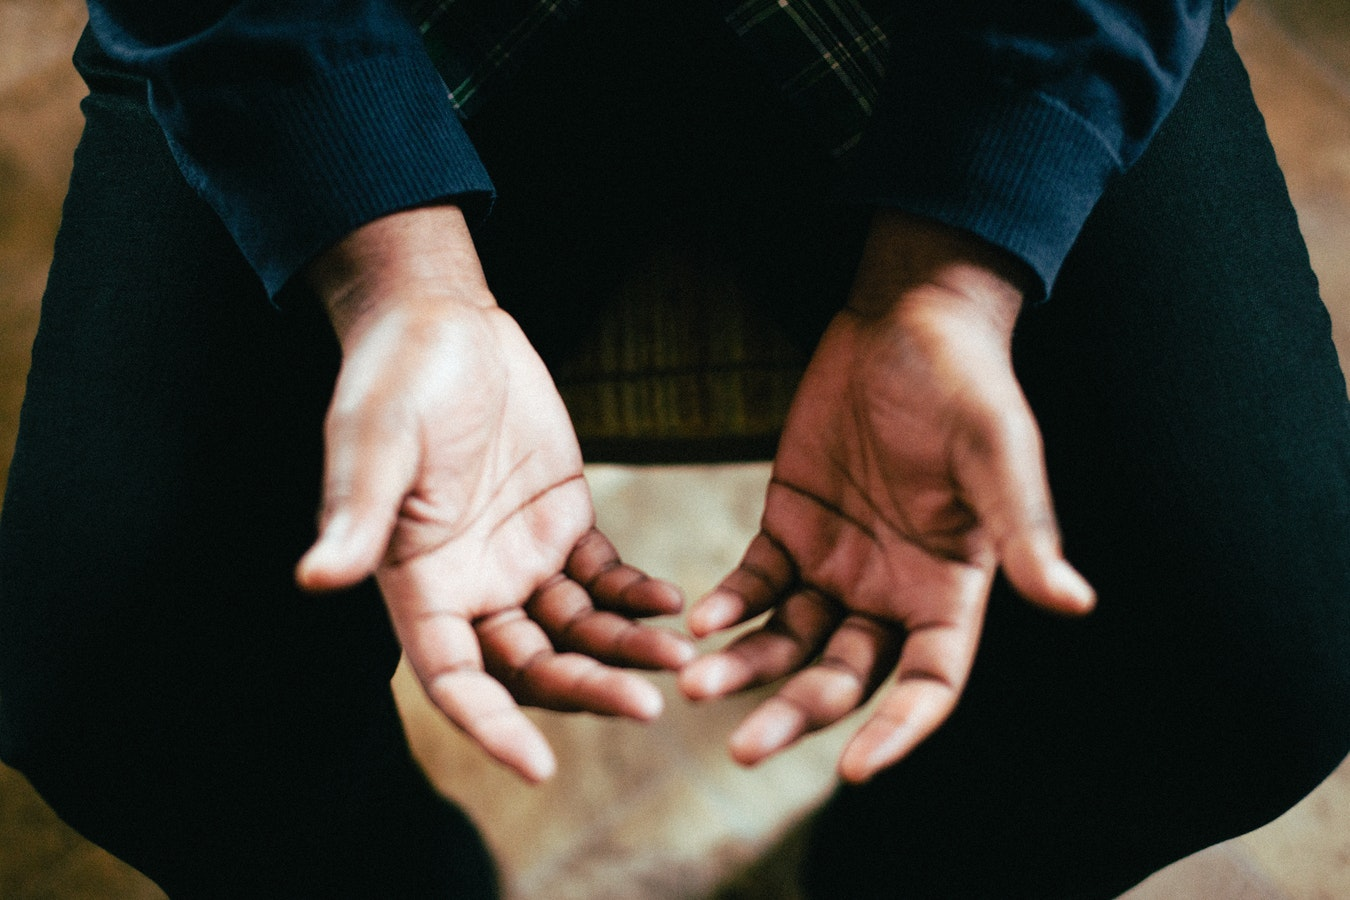 8 Prayers I Need to Pray More as a Church Leader